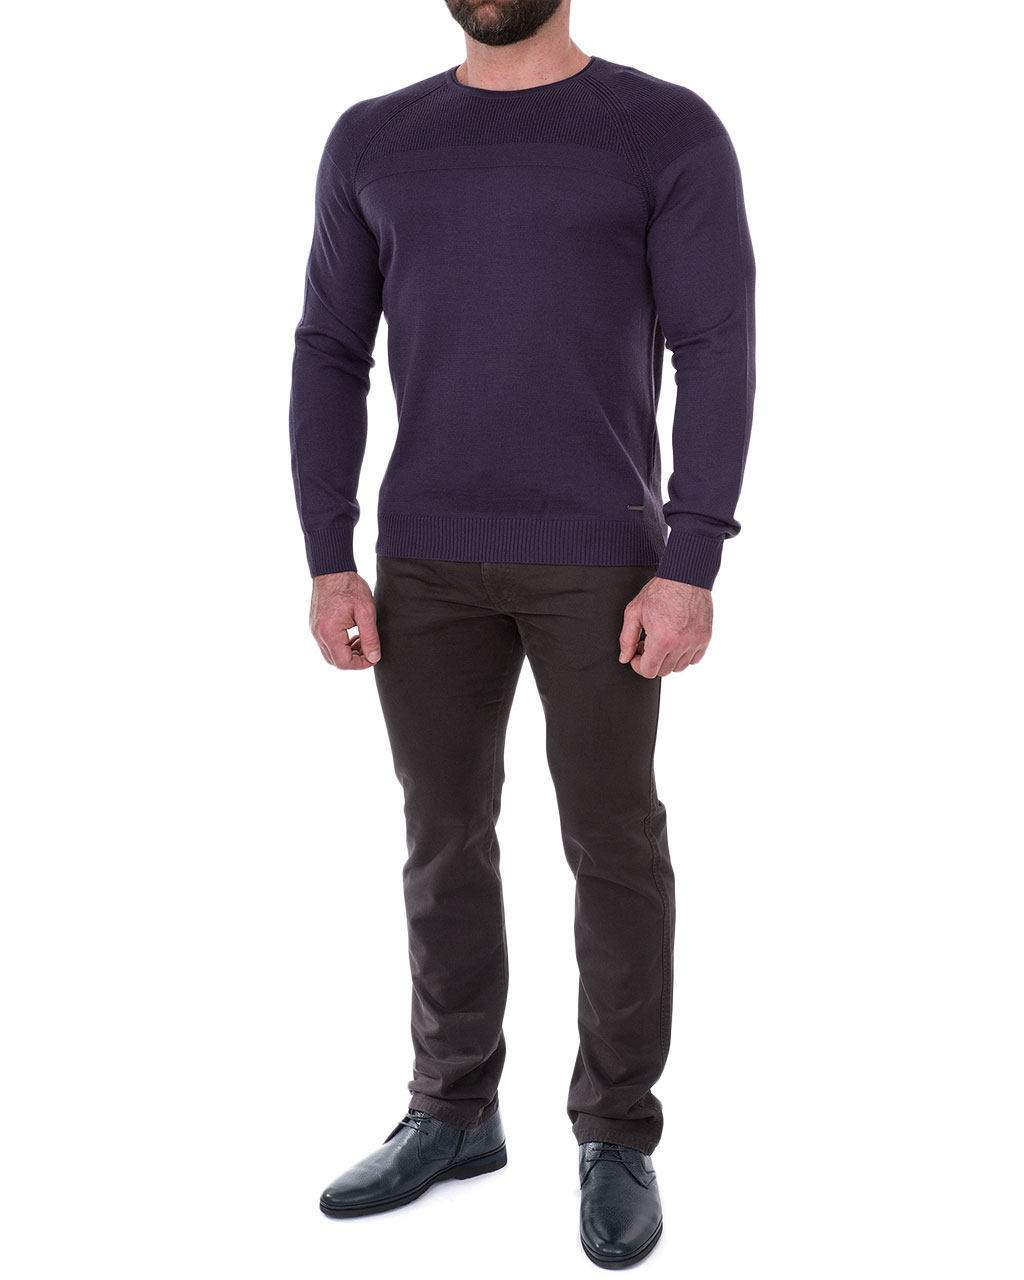 Men's jumper 7450-45532-860/19-20--2 (2)